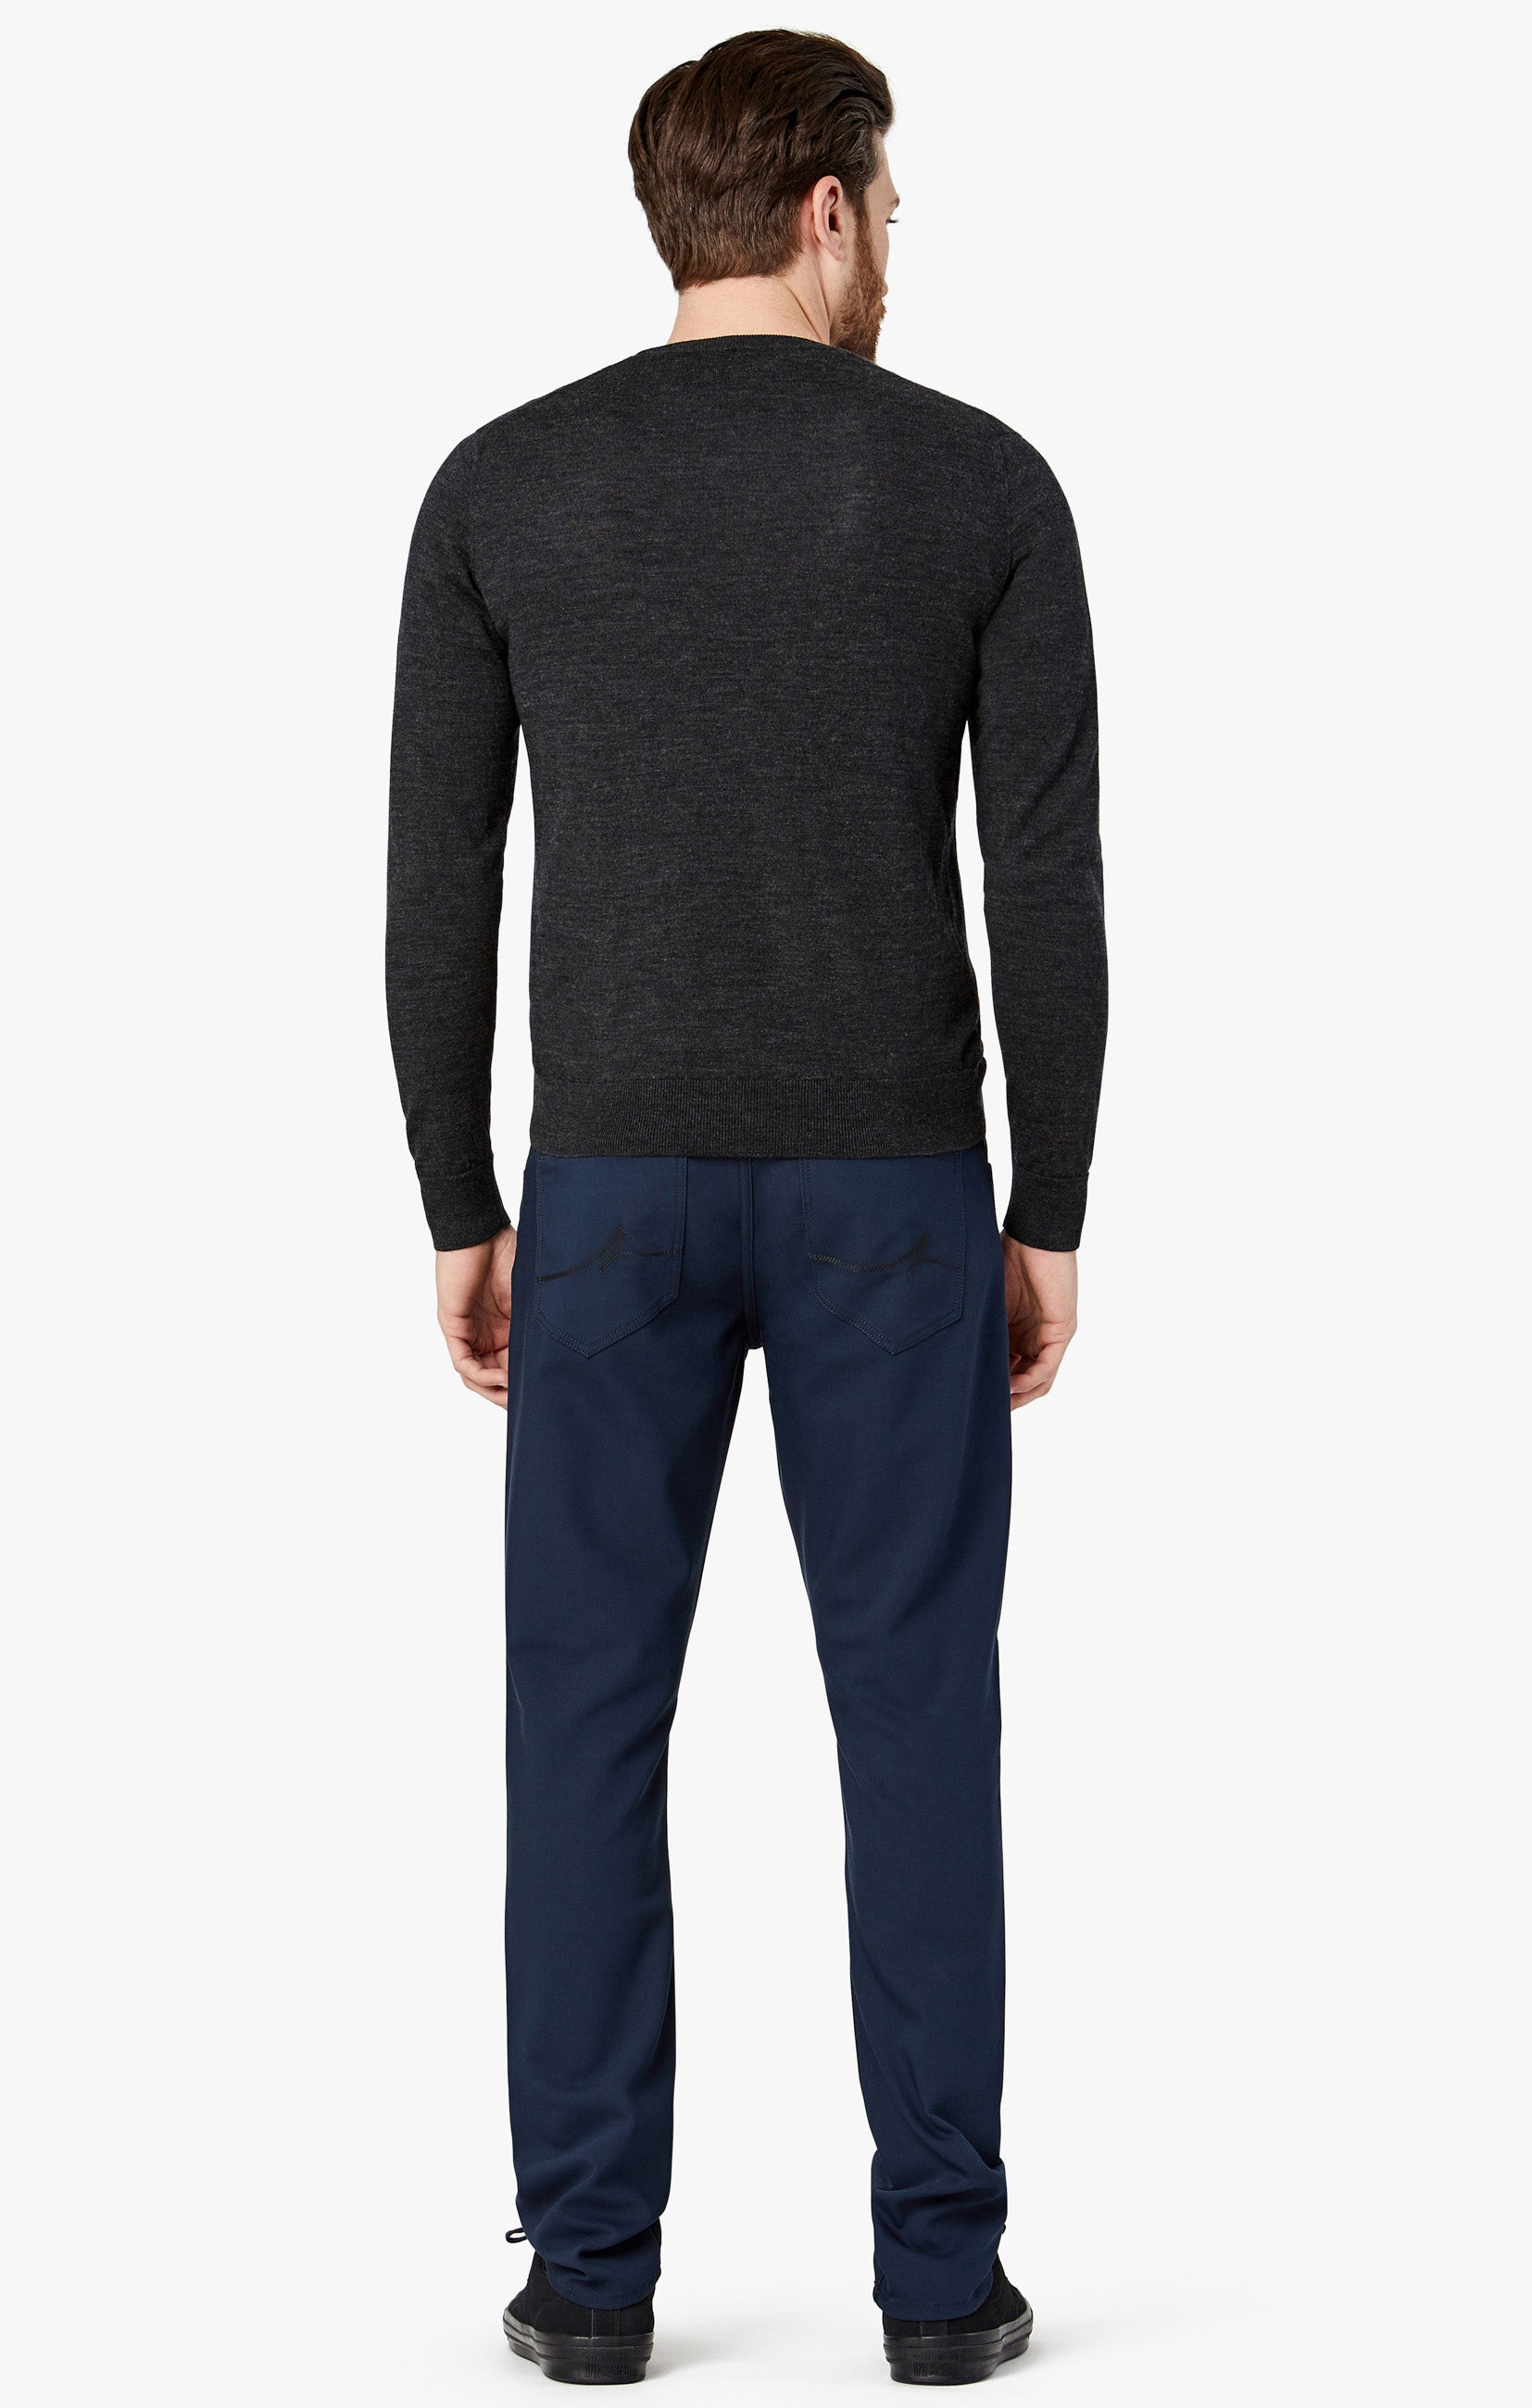 Courage Straight Leg Pants in Navy Commuter Image 4